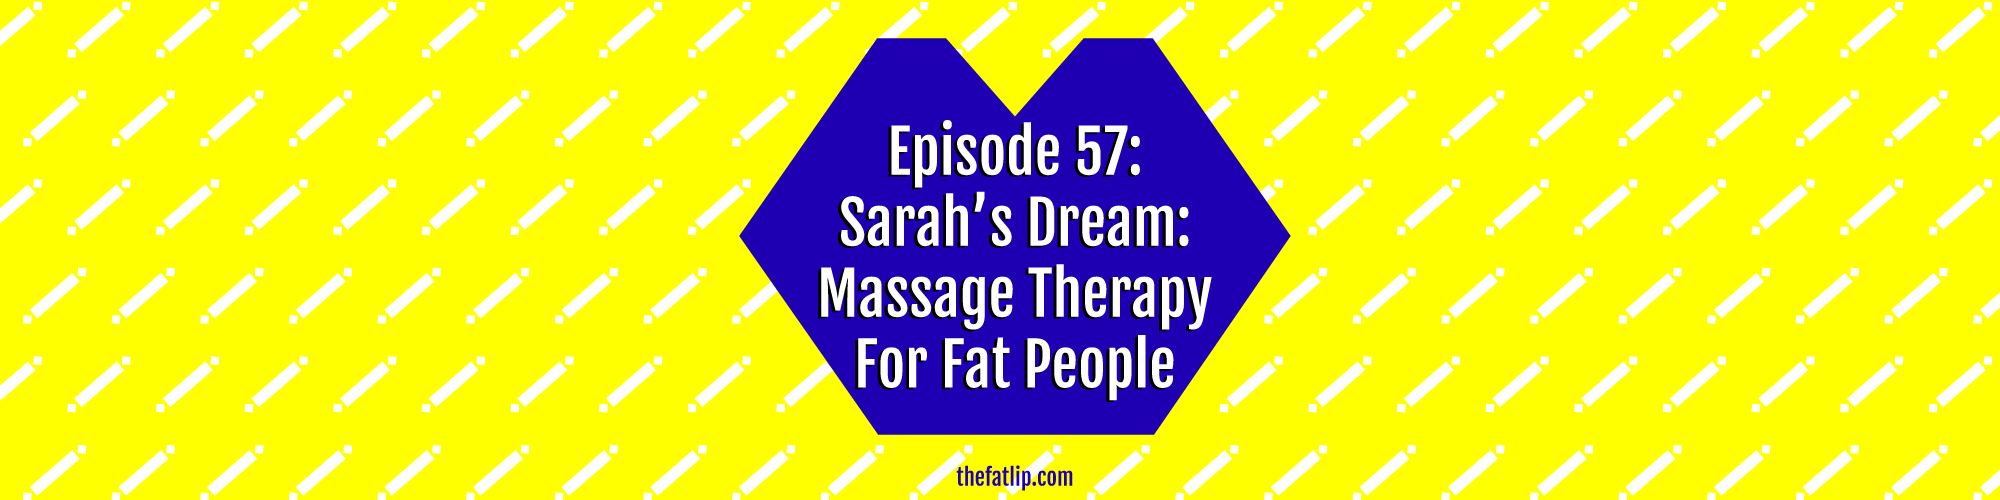 episode 57 massage therapy